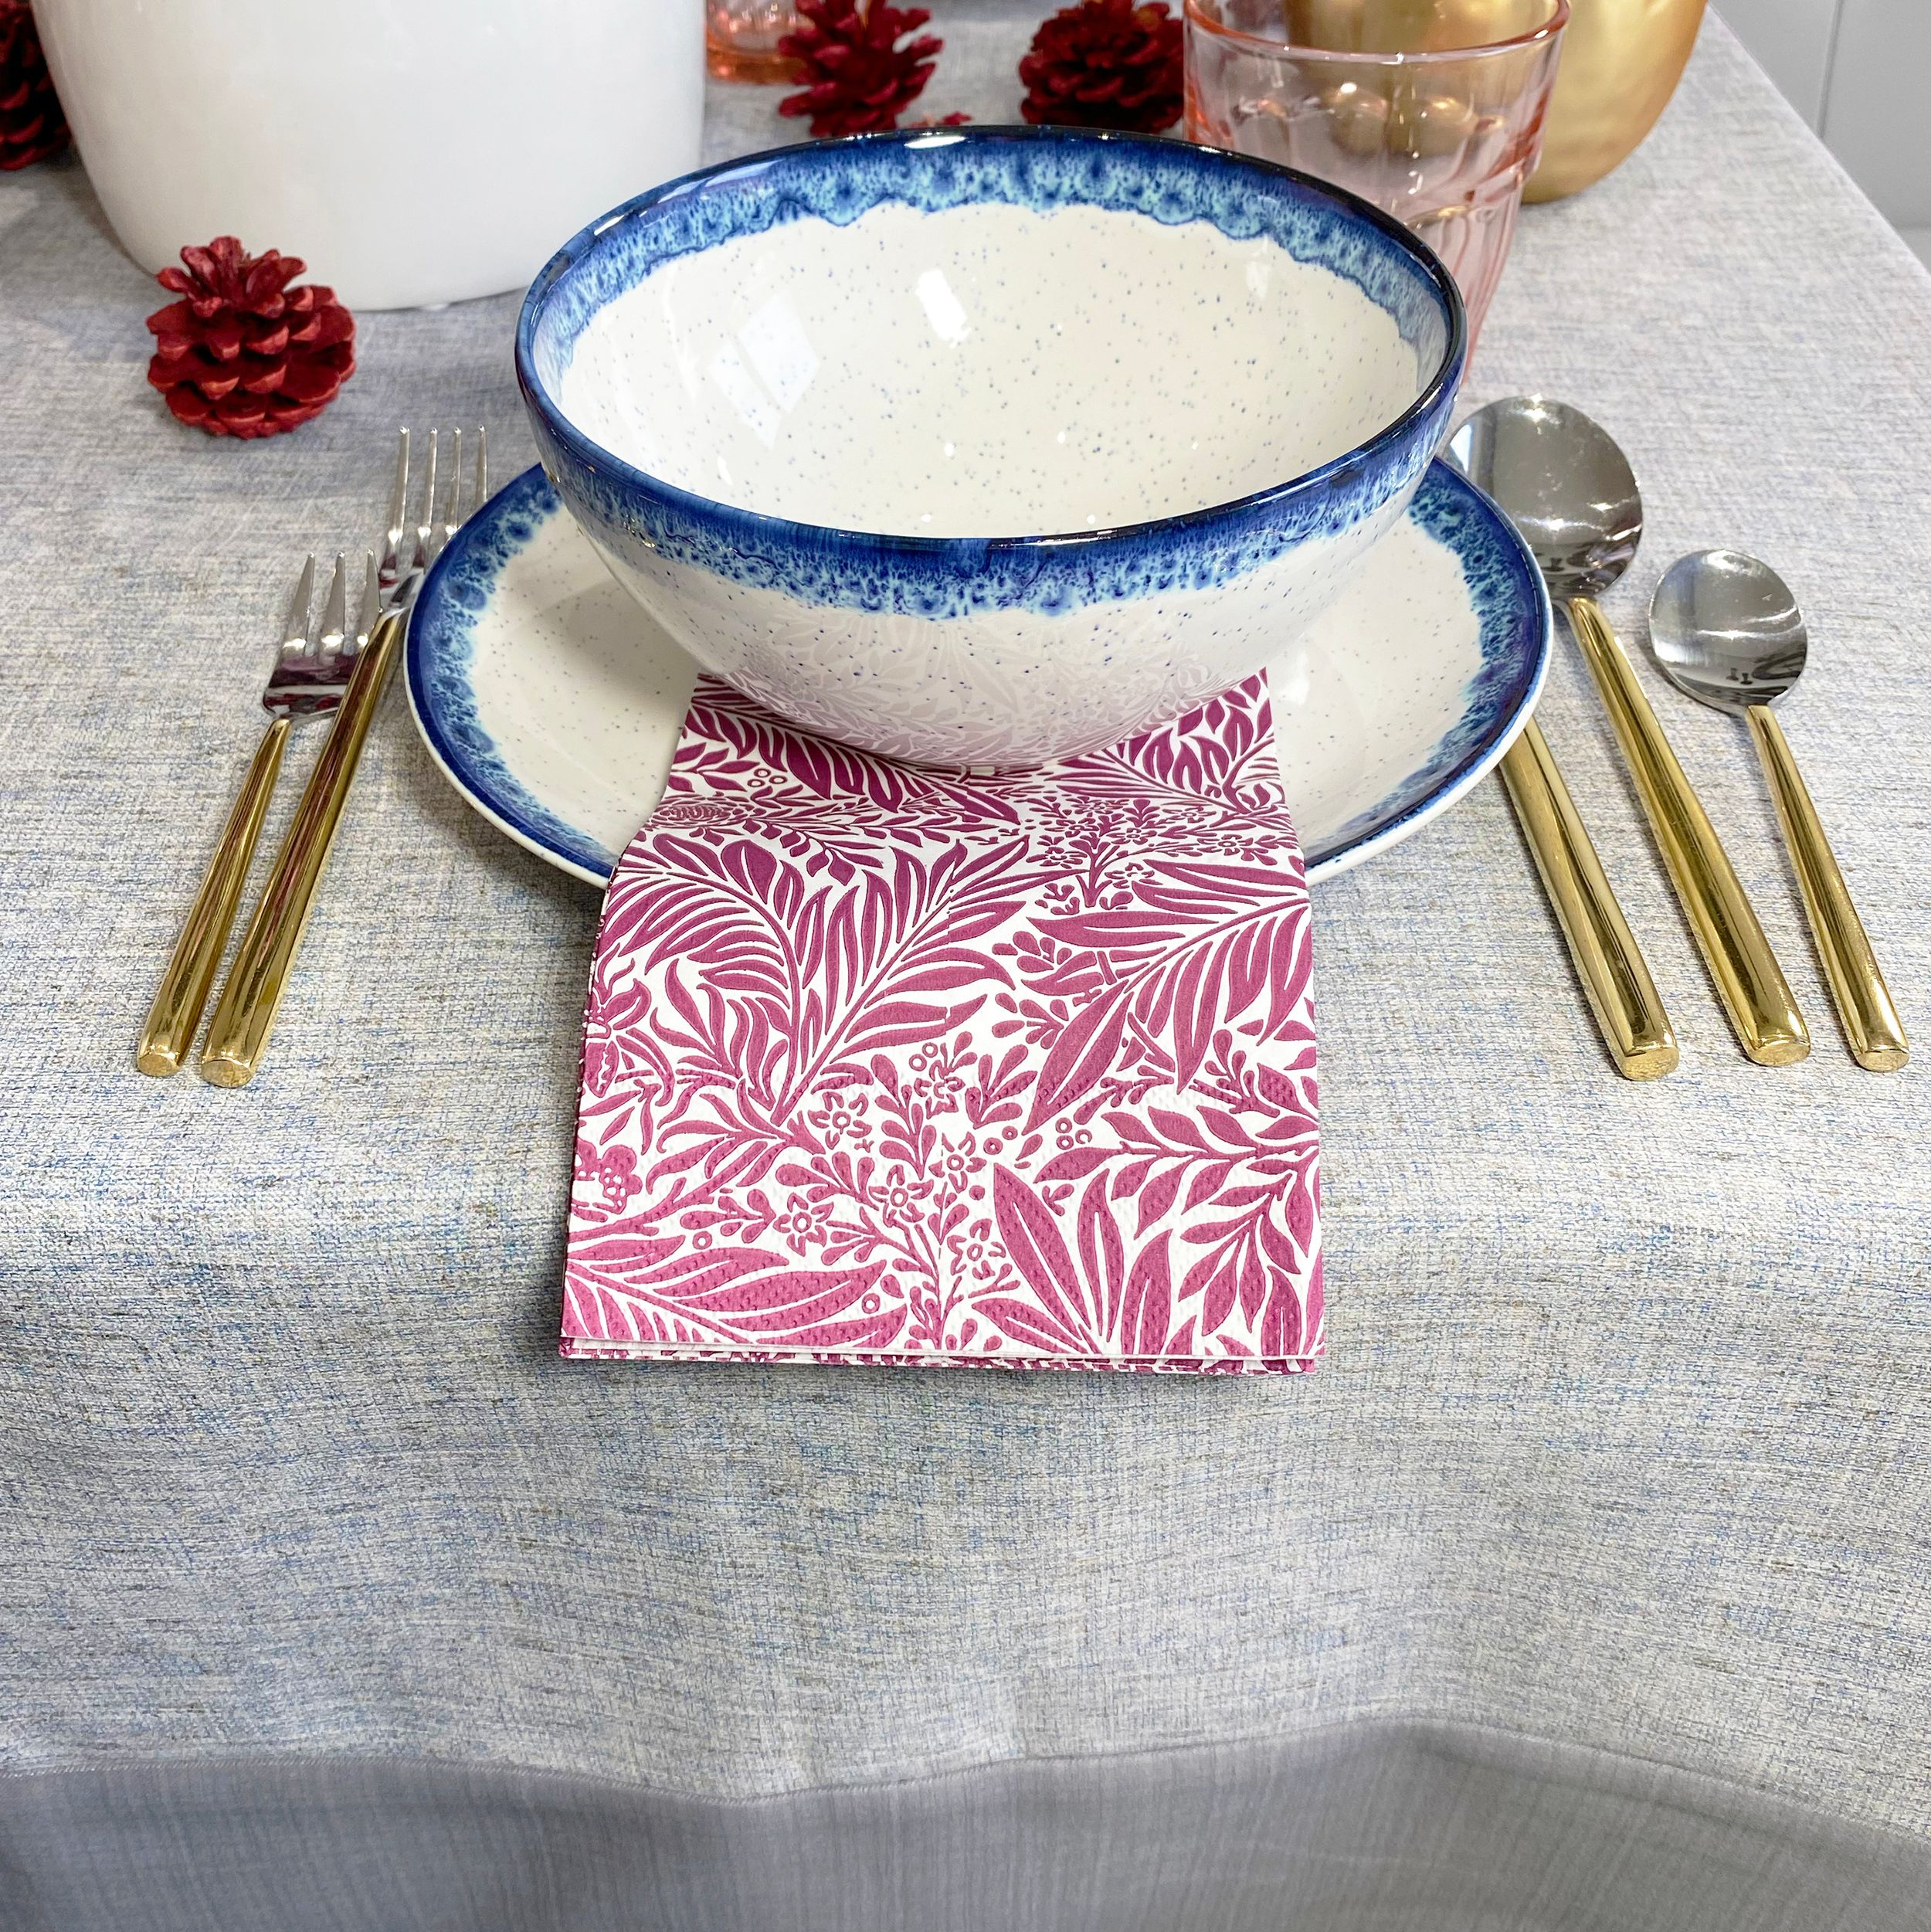 Happy Dia de los Muertos to my Mexican friends! And how was your Halloween this weekend? Seems like Covid didn't slow down the candy influx in this household 🤣 Hope your celebrations were wonderful like ours. New Blog Post! Fall-ing in love with the Victoria Tablecloth 💓 #tablesetting #tabledecor #tabledecoration #diningroom #diningtable #diningtabledecor #tablecloth #aroundthetable #tablesettingdecoration #tablestyling #tablescape #ardeahome #falltable